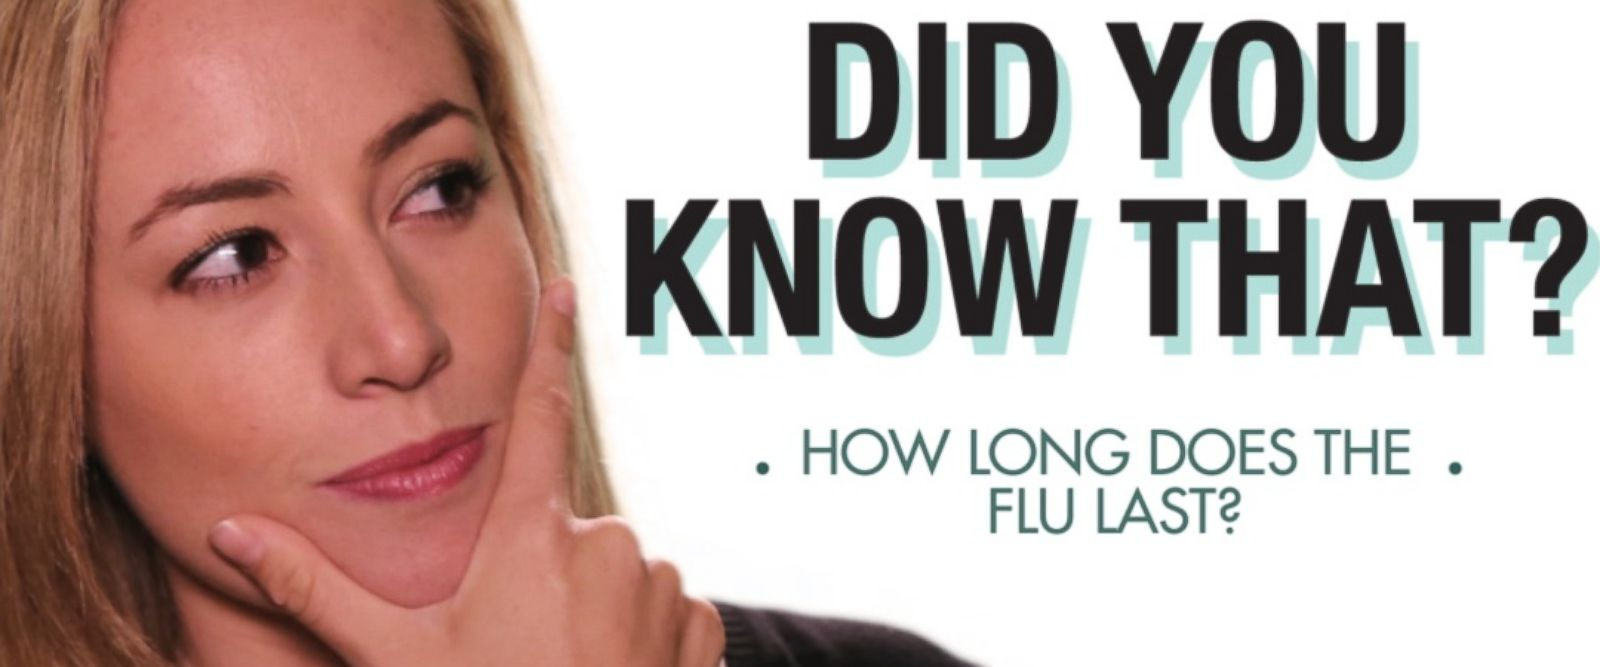 VIDEO: How long does the flu last?